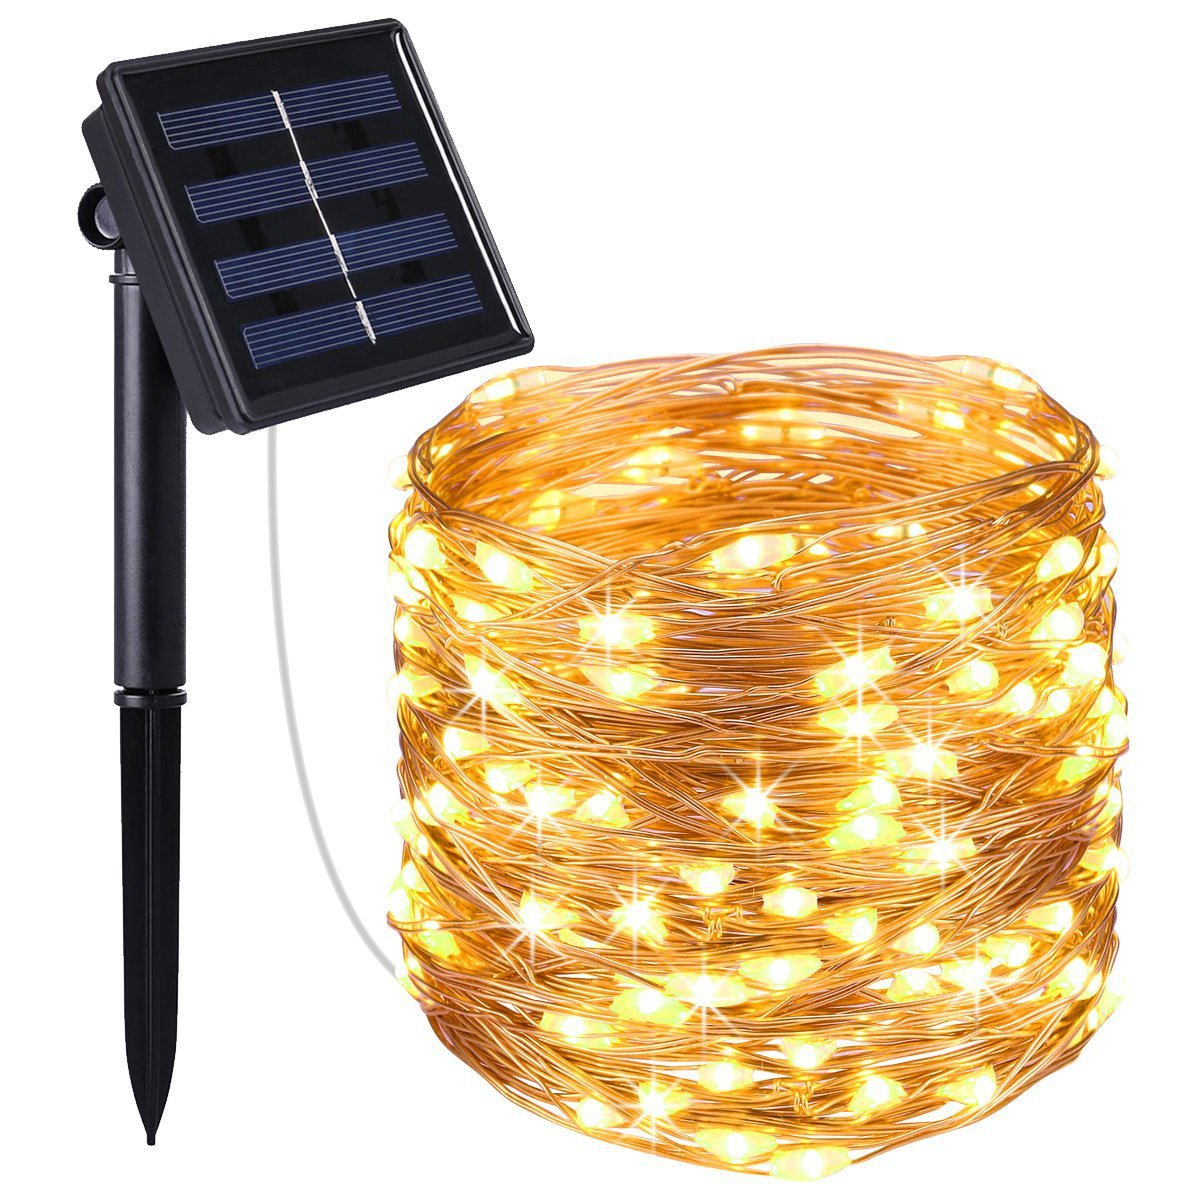 LED Fairy Light 5/10/20/30/40/50M Solar String Light Chain Garland Copper Wire Backyard Outdoor Christmas Halloween DecorationLED Fairy Light 5/10/20/30/40/50M Solar String Light Chain Garland Copper Wire Backyard Outdoor Christmas Halloween Decoration